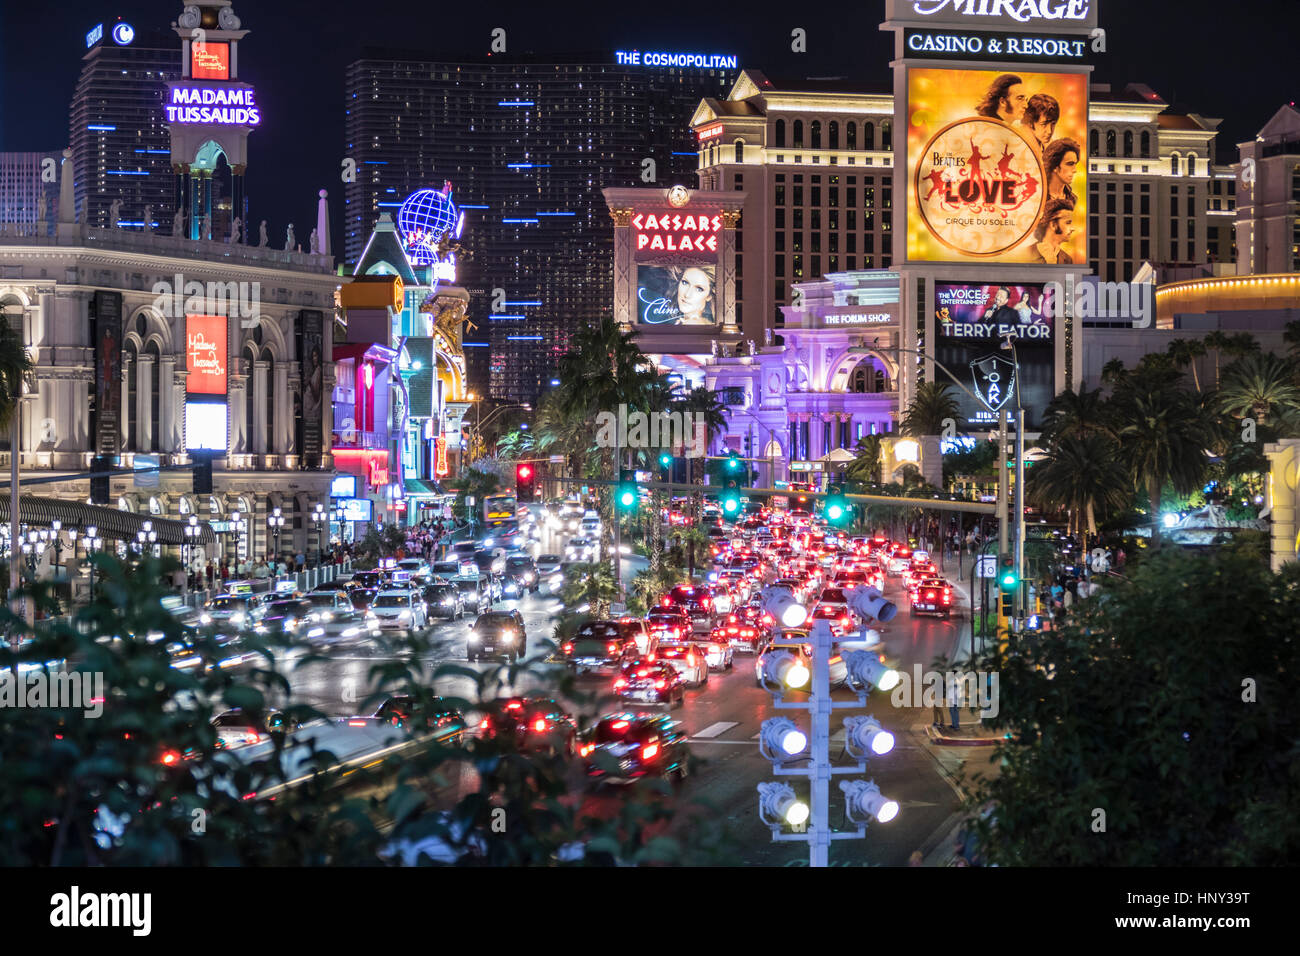 Las Vegas, Nevada, USA - 10 octobre 2015 : Nuit week-end le trafic sur la bande de Las Vegas. Photo Stock